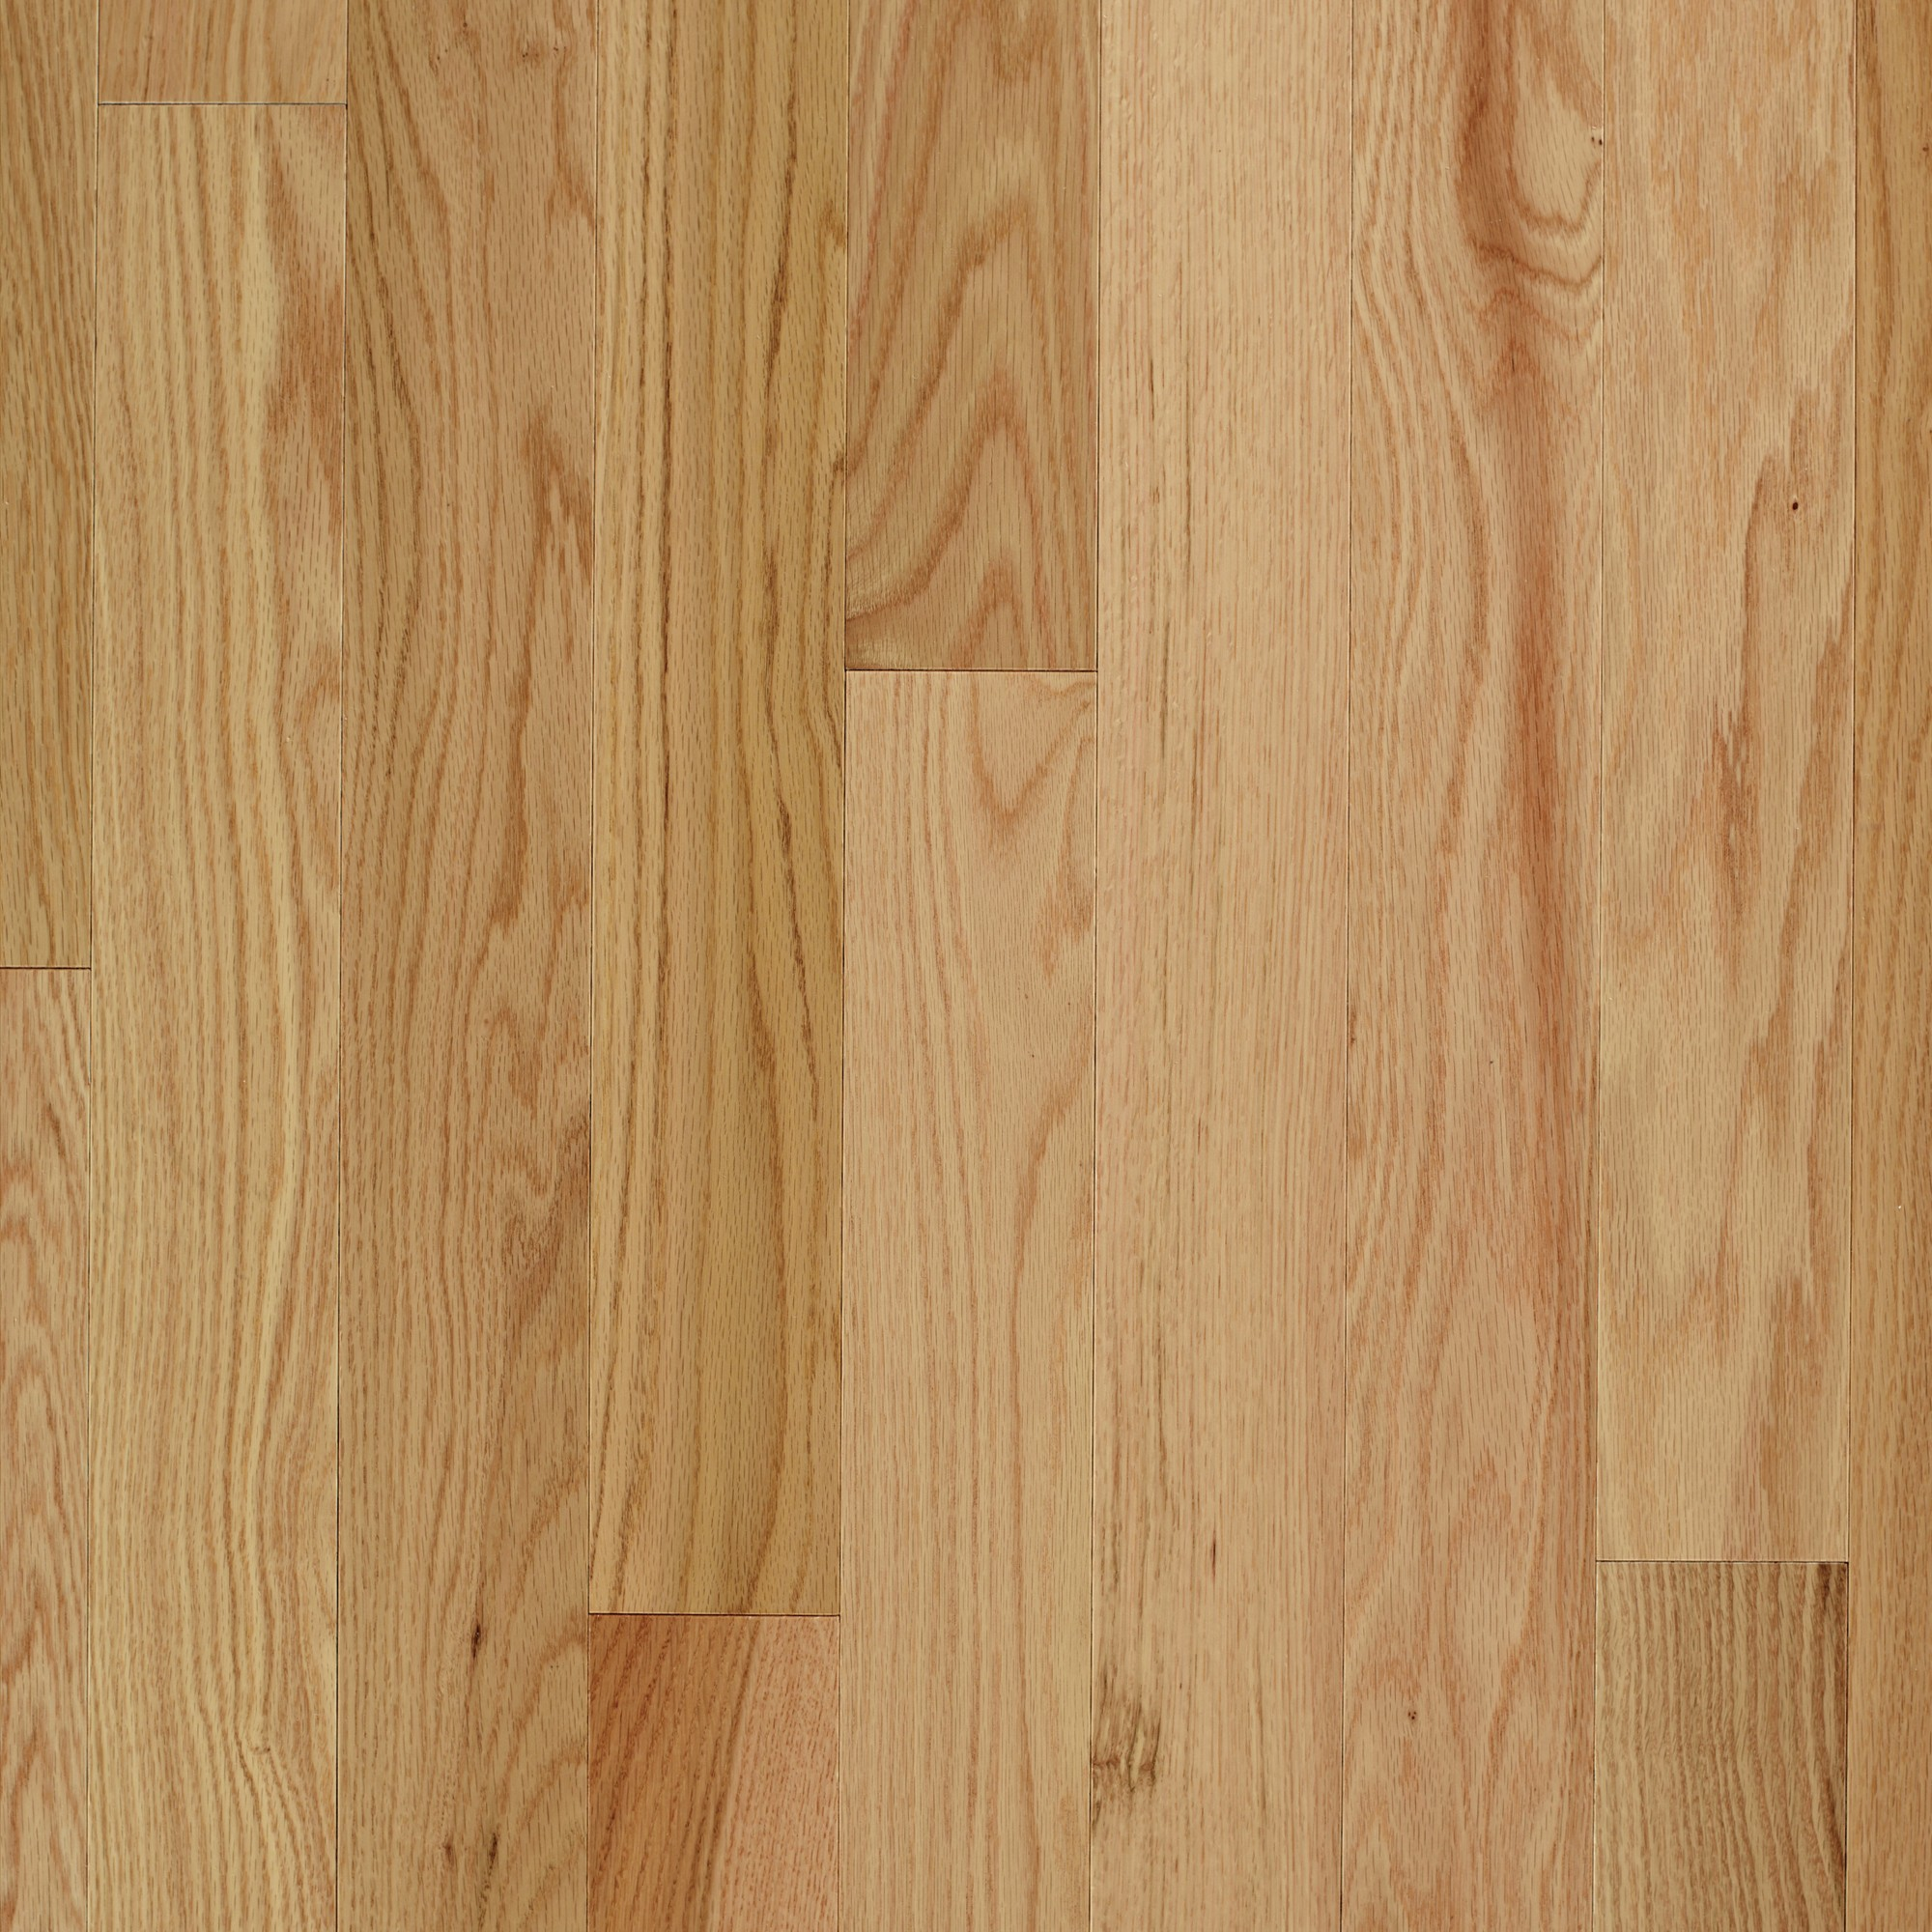 Smooth Red Oak Natural Vintage Hardwood Flooring And